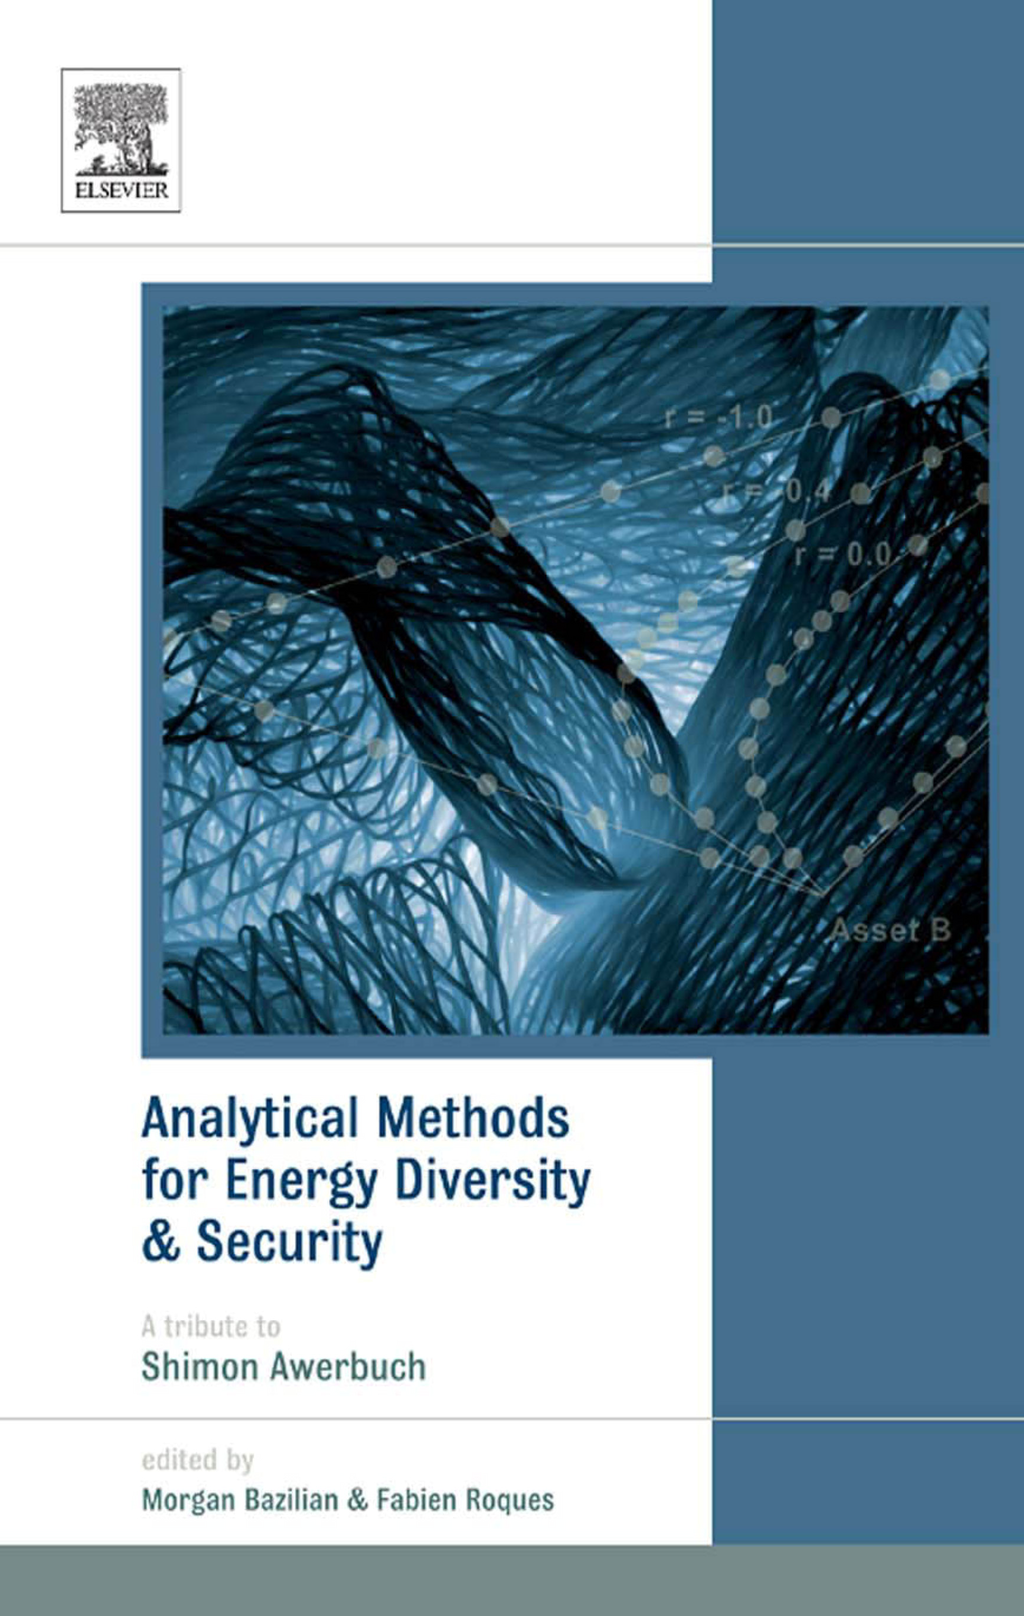 Analytical Methods for Energy Diversity and Security Portfolio Optimization in the Energy Sector: A Tribute to the work of Dr. Shimon Awerbuch